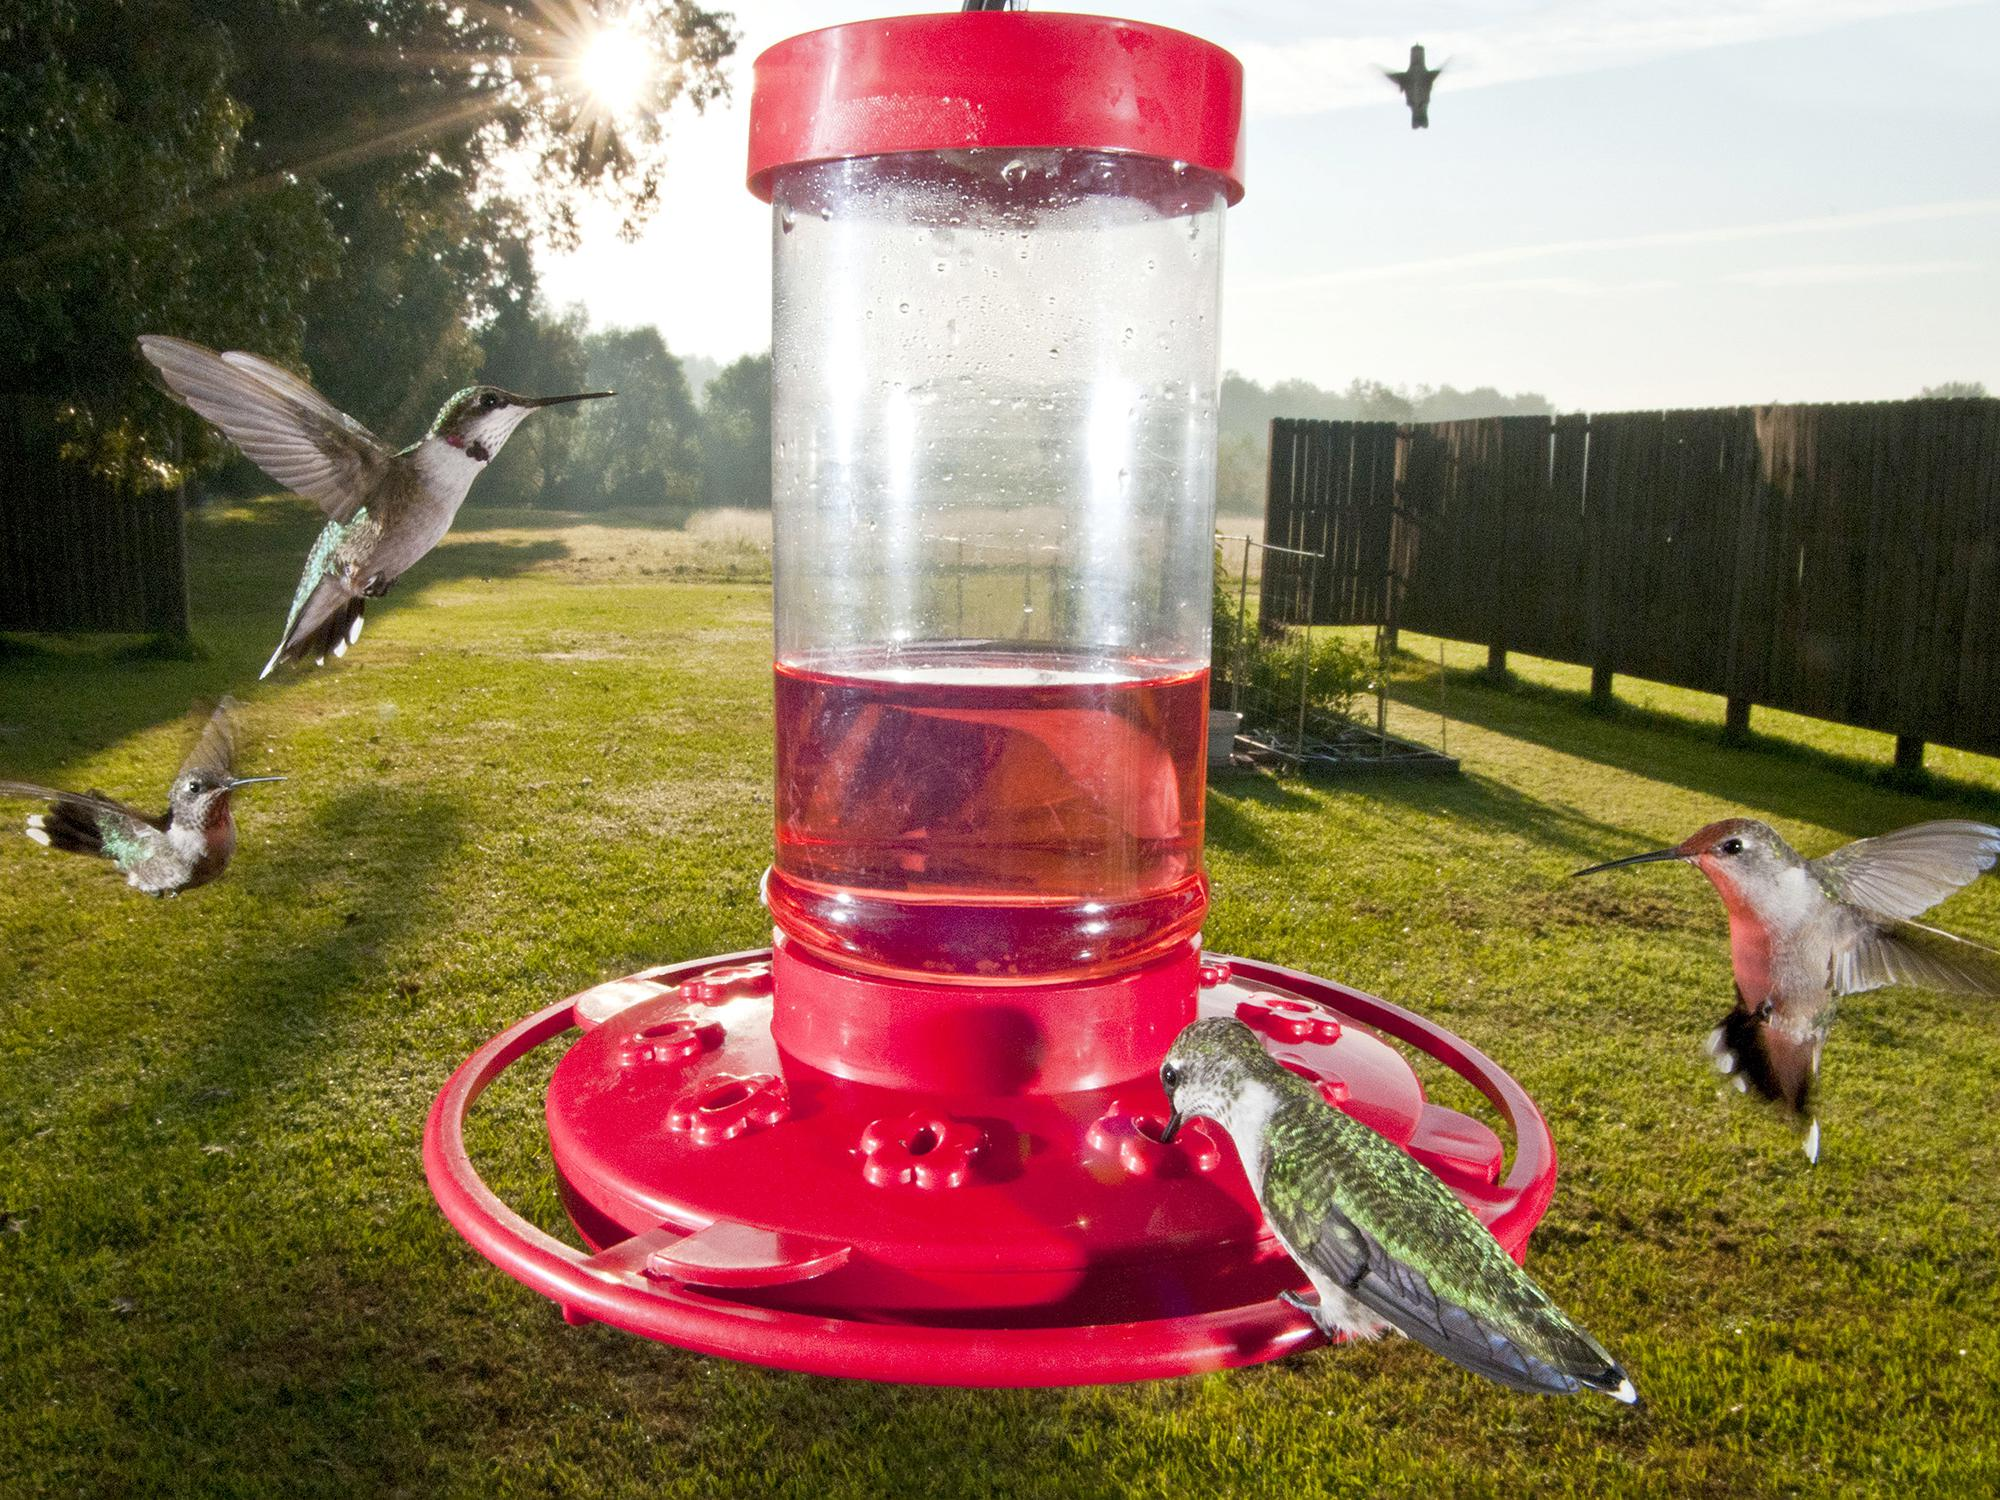 Hummingbird feeders attract tiny migrating visitors to Mississippi yards, but anyone who is not willing to keep fresh feed in a frequently cleaned container should consider planting a hummingbird garden instead. (MSU Extension Service file photo)